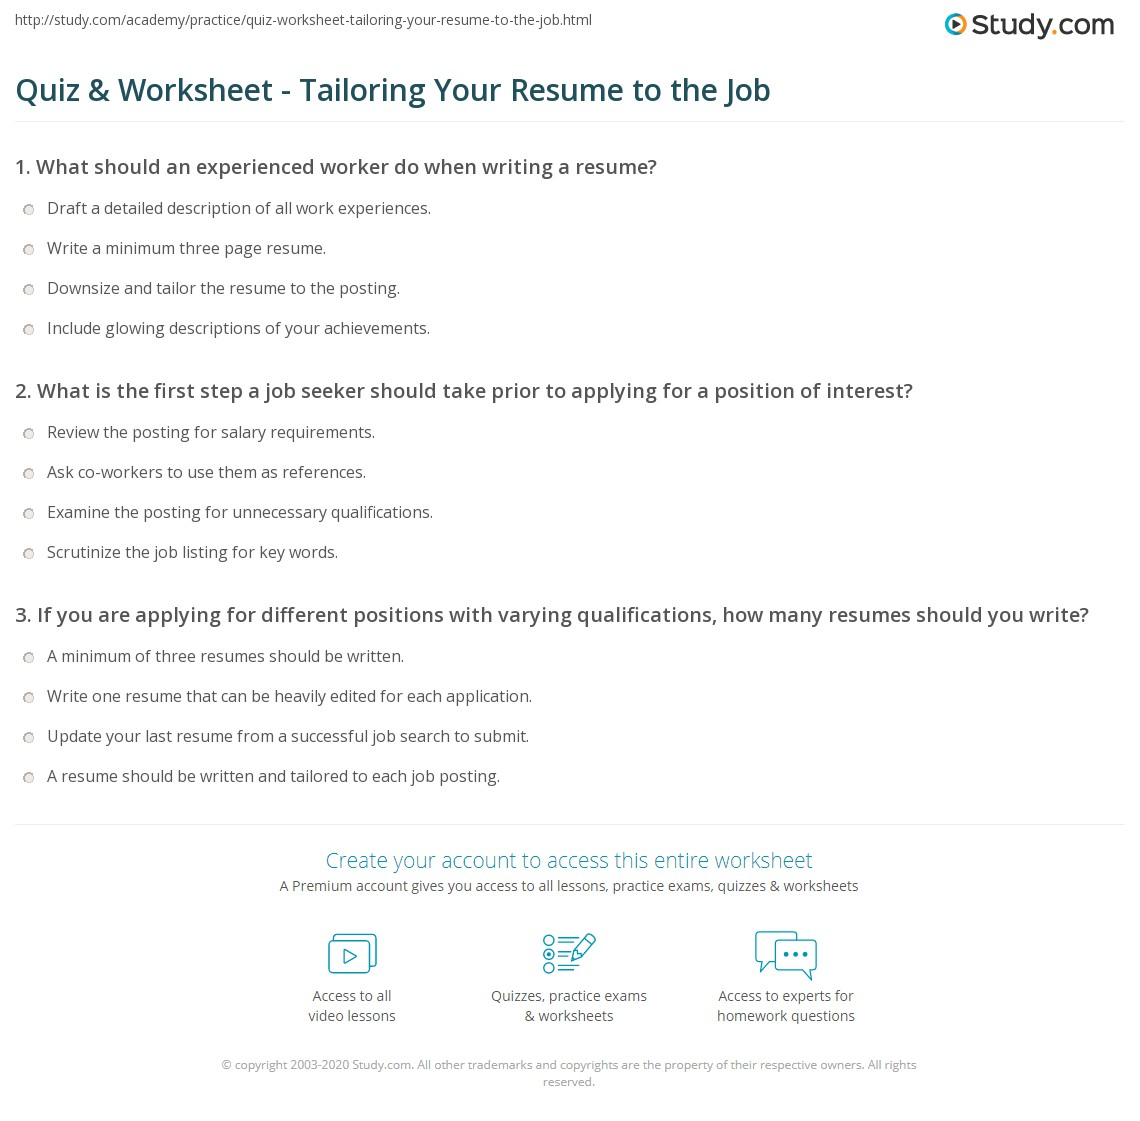 quiz worksheet tailoring your resume to the job study com print tailoring the content of your resume for a job worksheet